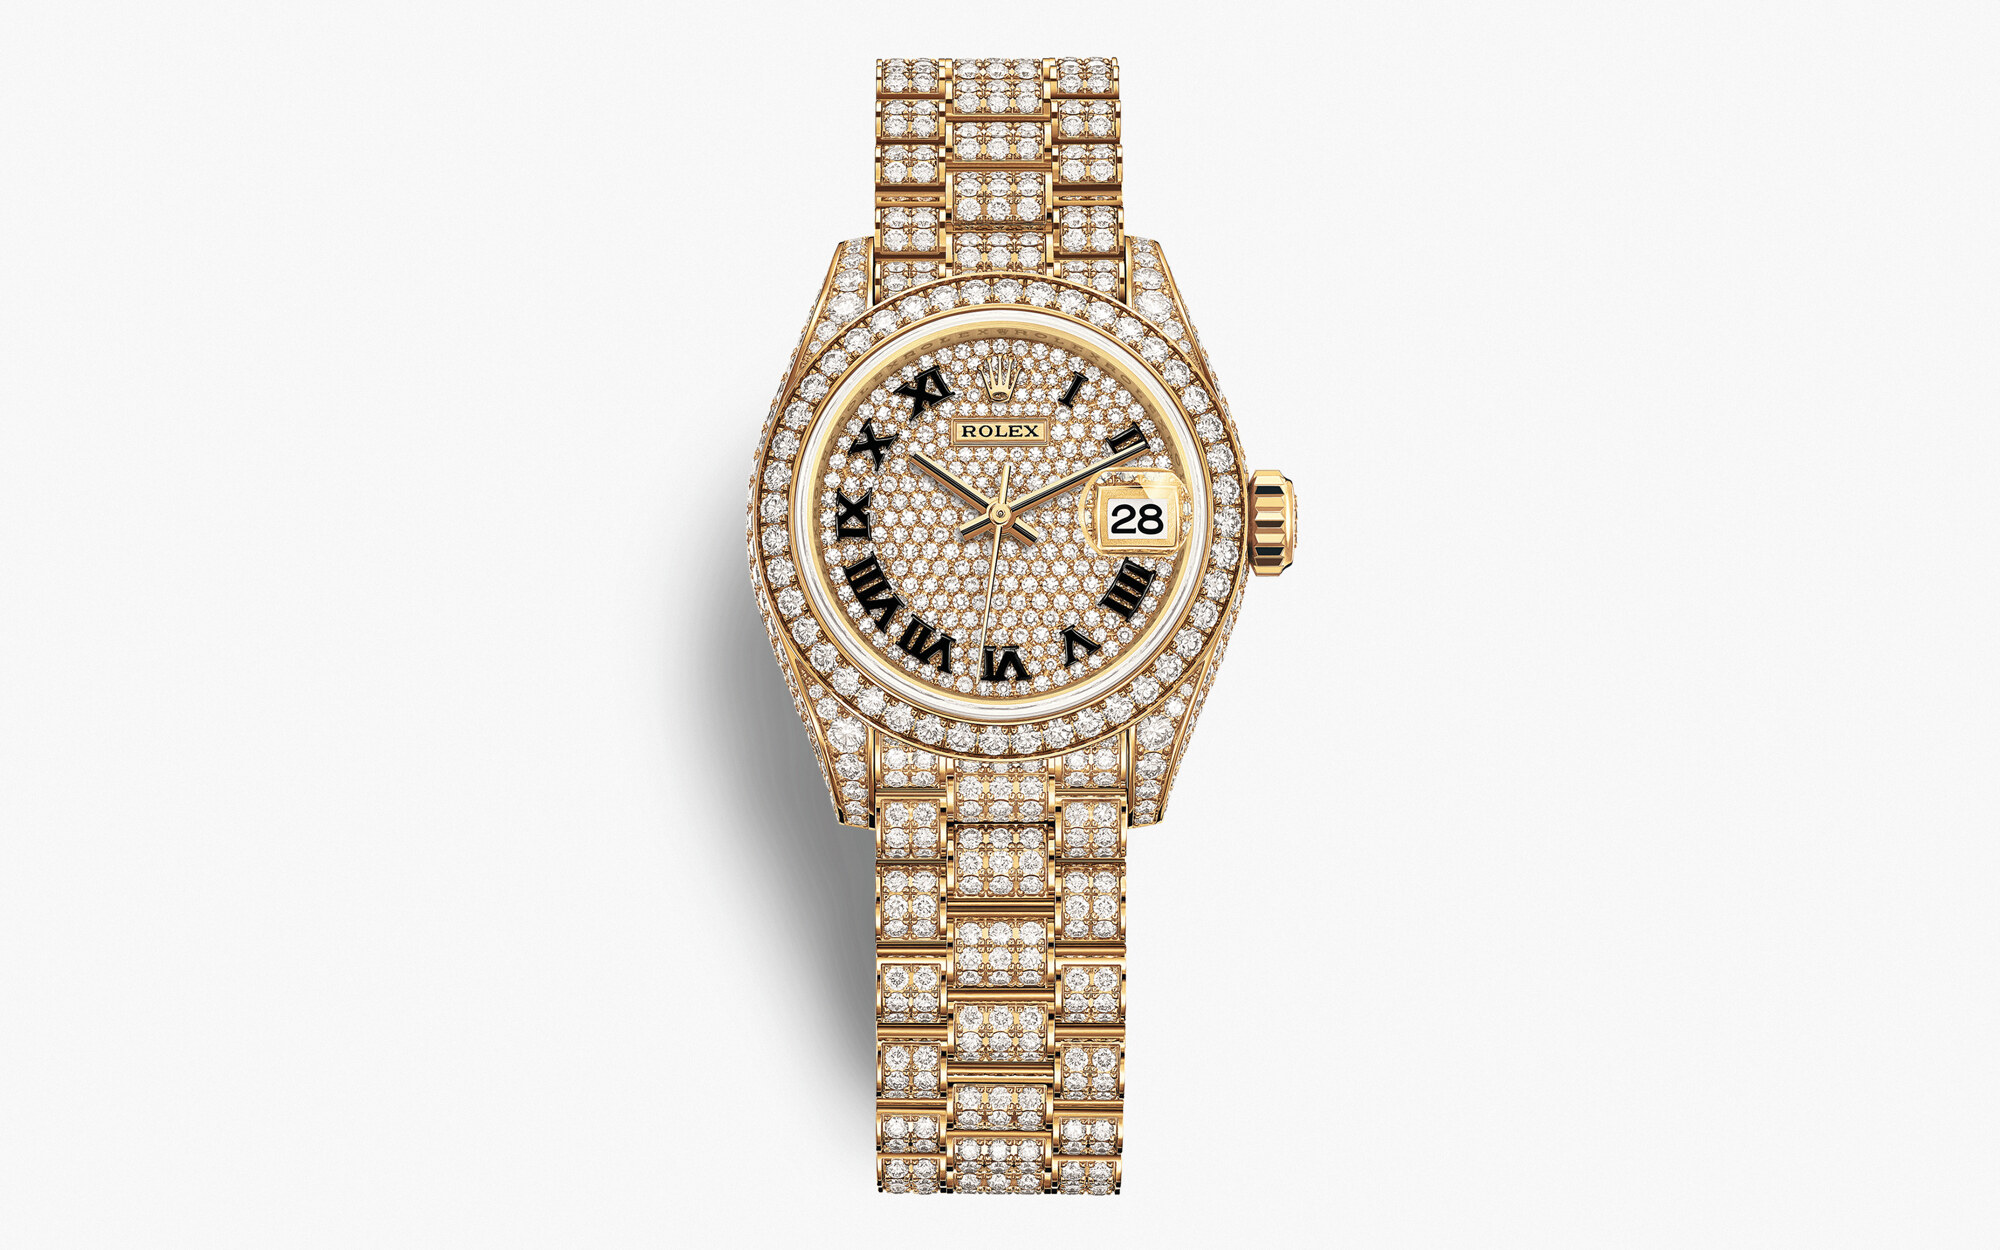 Rolex Lady-Datejust 2021Oyster, 28 mm, oro giallo e diamanti